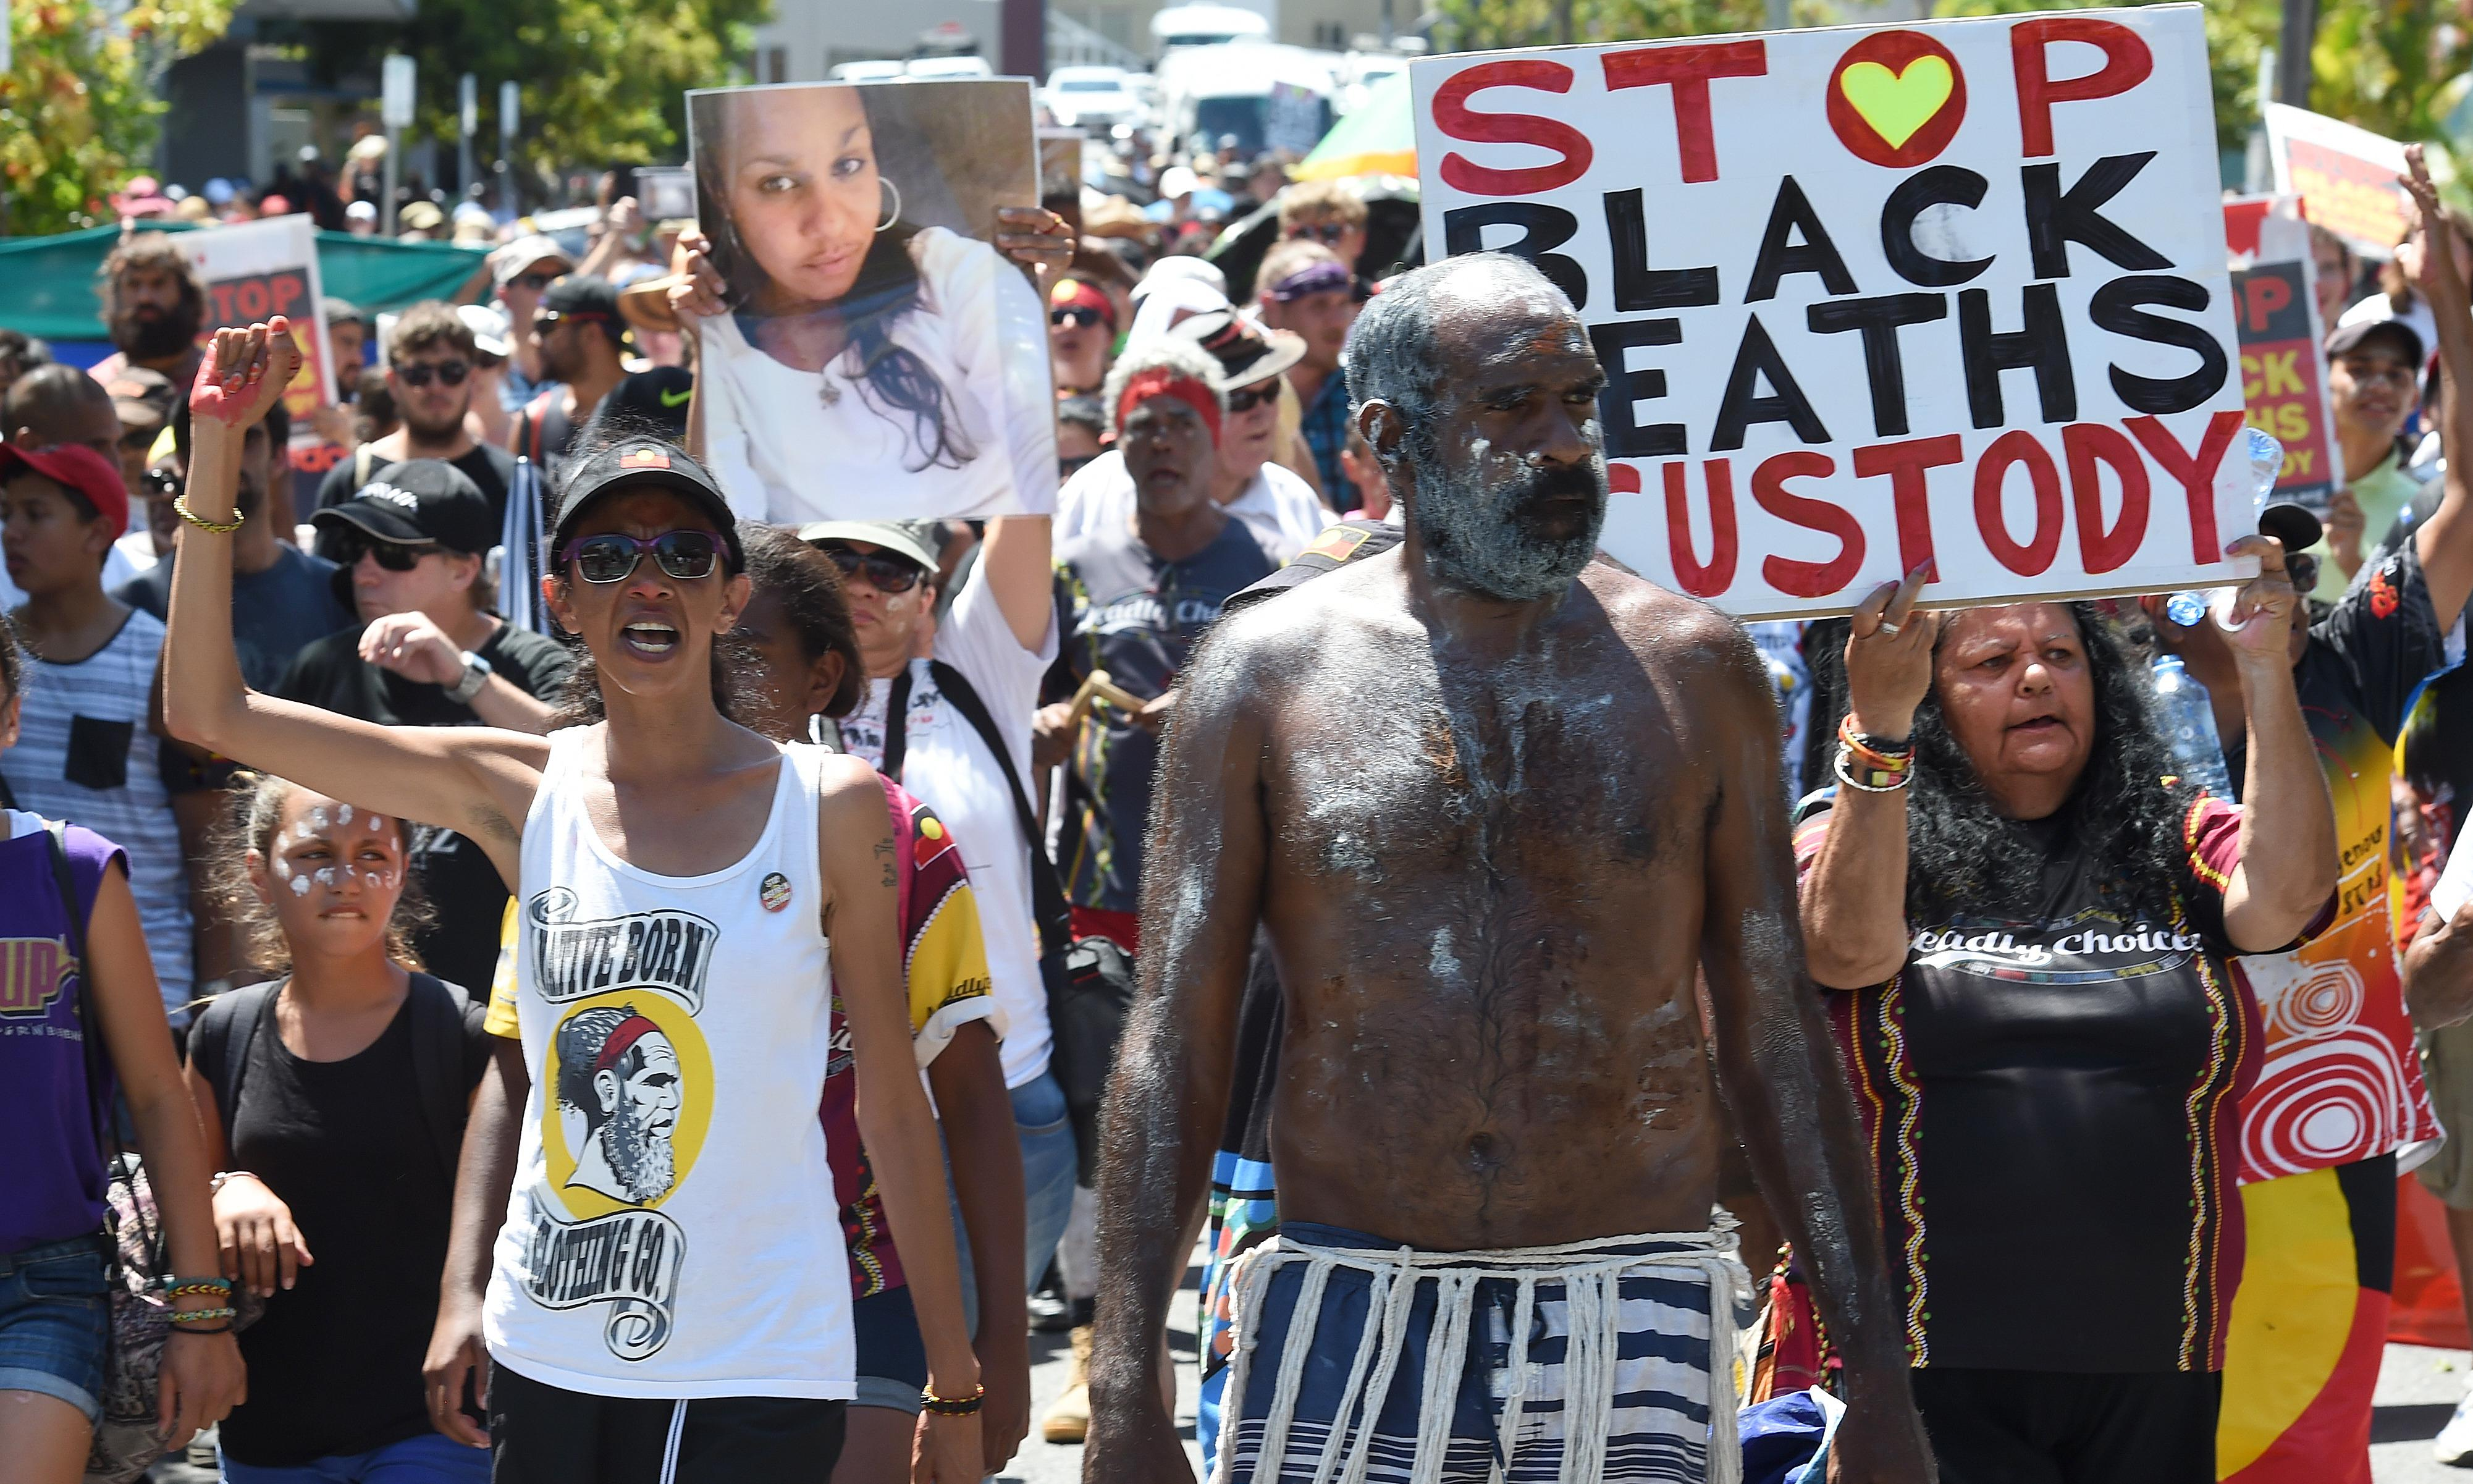 an analysis of the high rate of aboriginal deaths in custody in australia Incarceration in australia while we have seen a decline in the rates of aboriginal deaths in custody, since 1991 the these high rates continue to show.